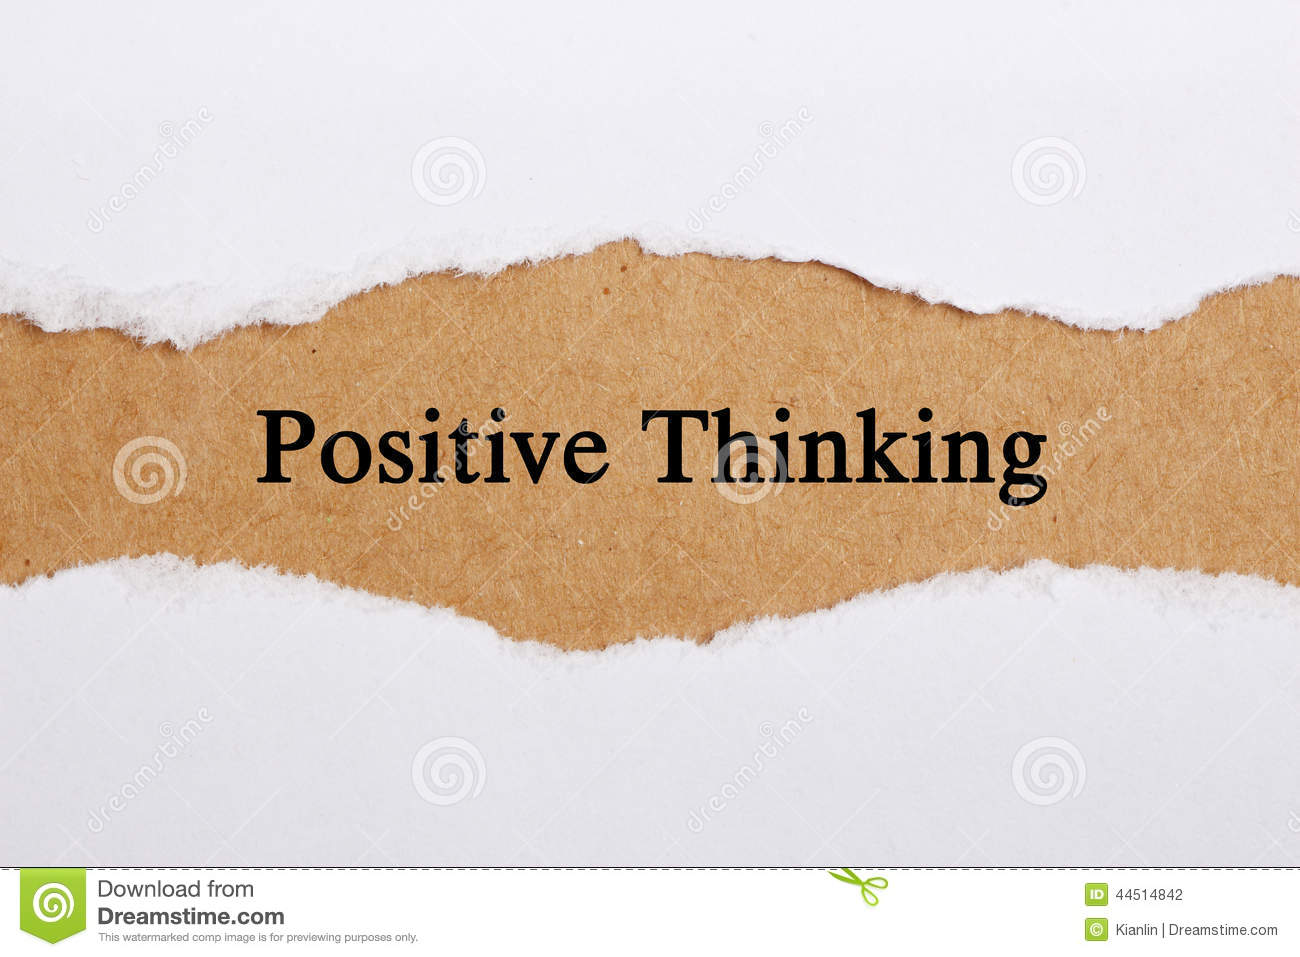 Inspirational Positive-Thinking Messages